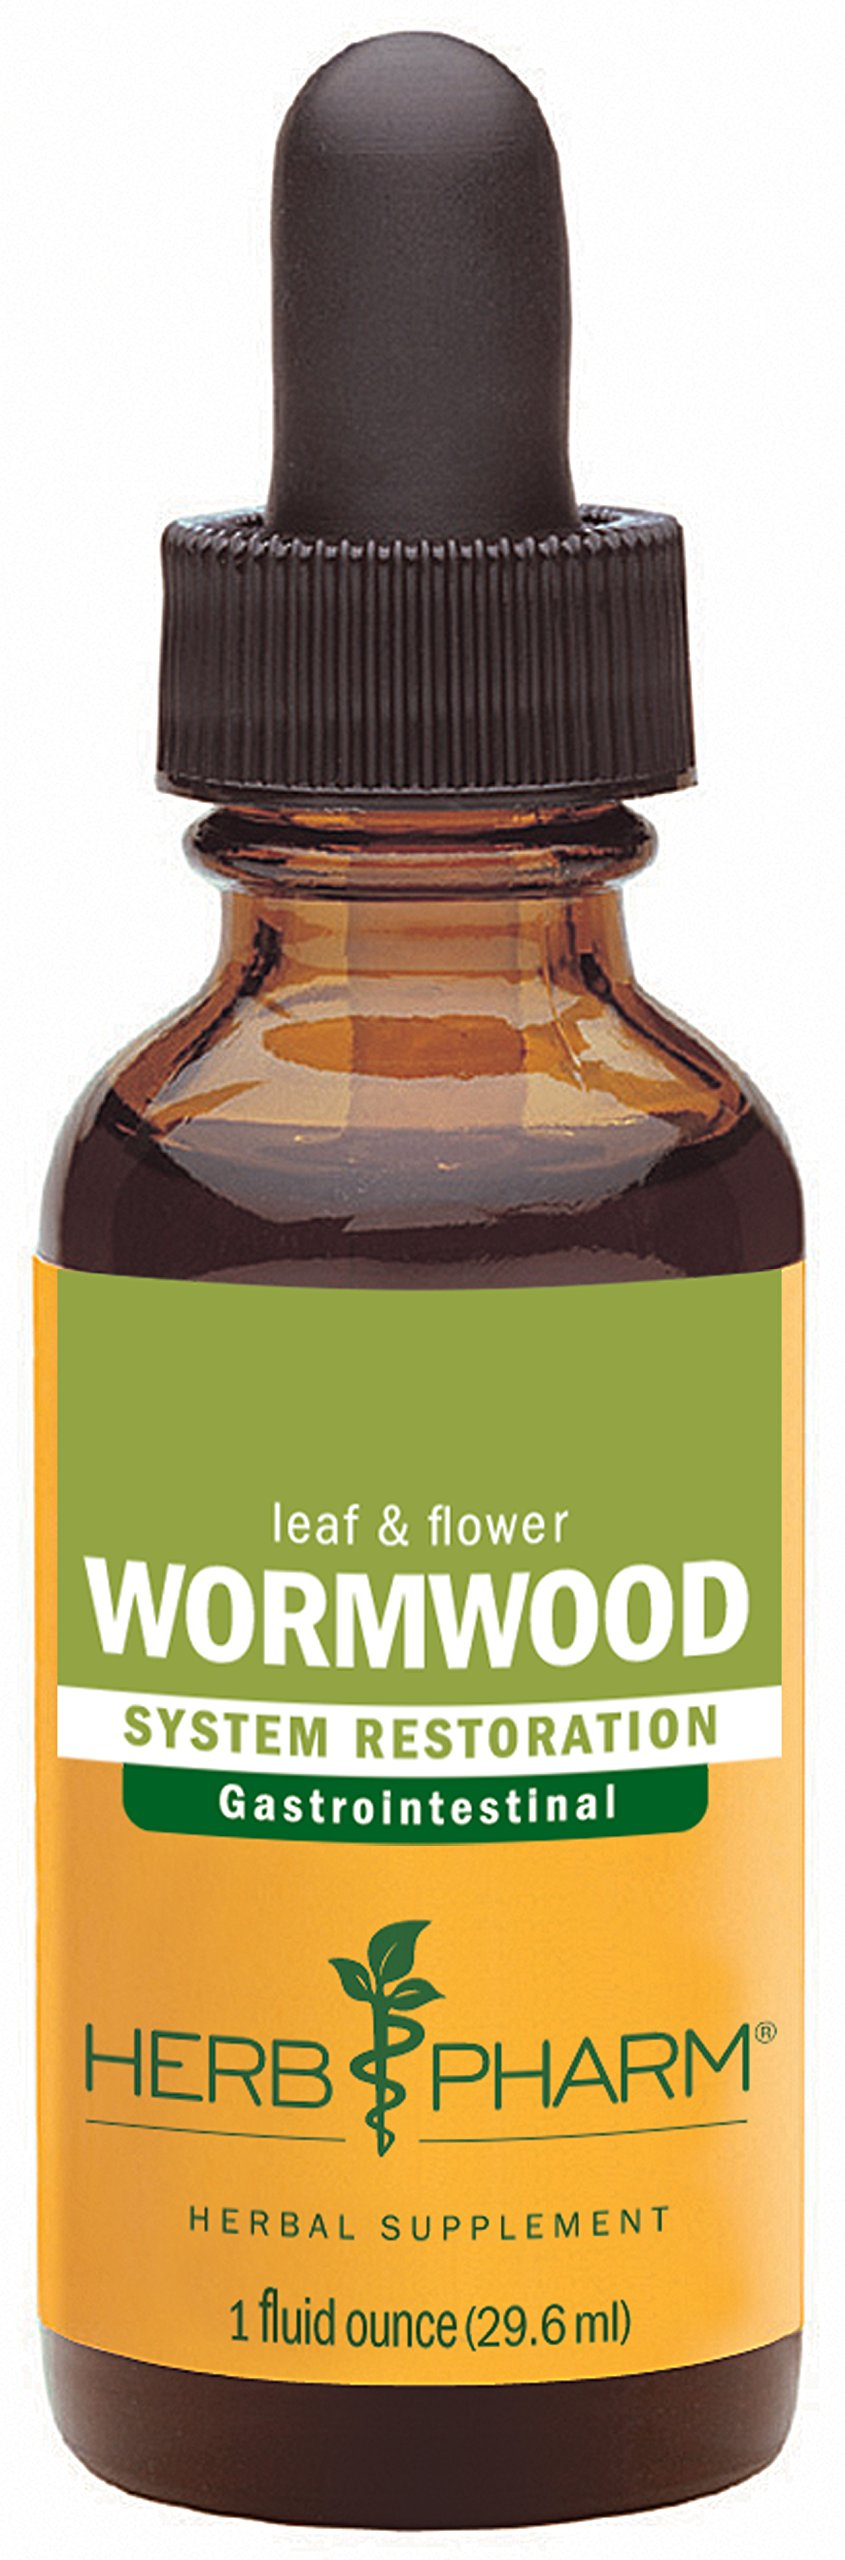 Herb Pharm Certified Organic Wormwood Extract for Digestive System Support - 1 Ounce